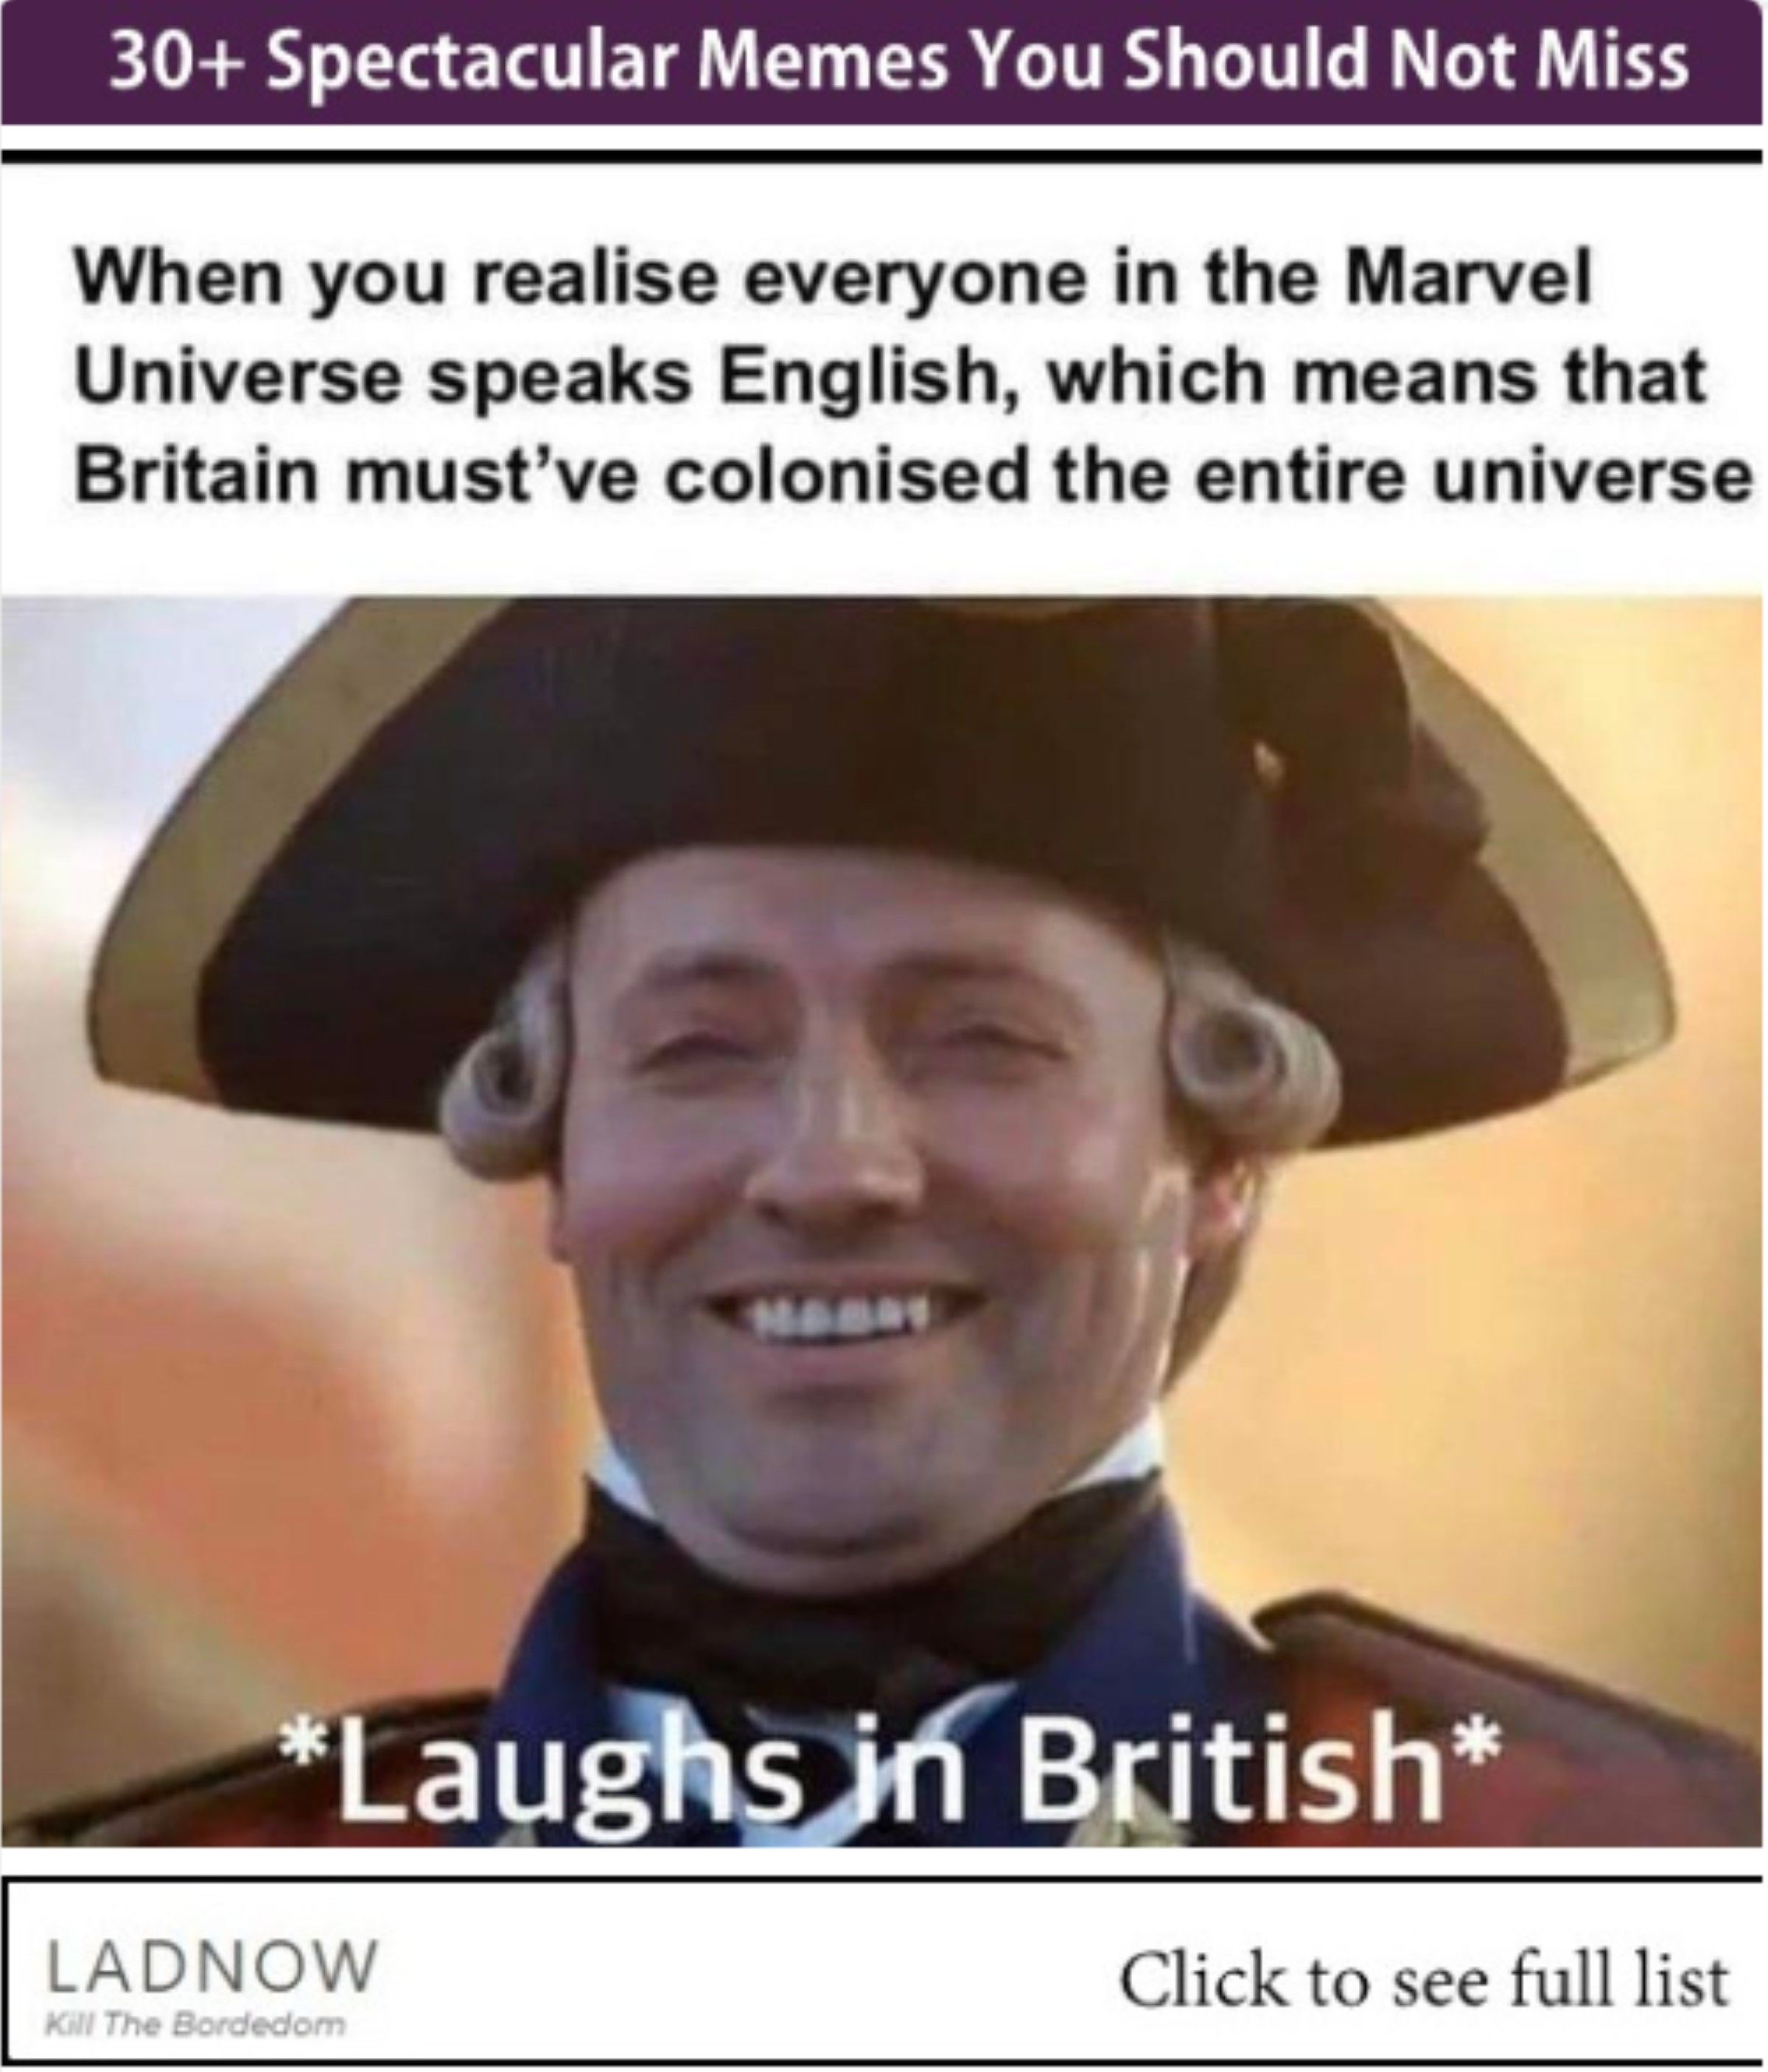 30 Spectacular Memes You Should Not Miss Ladnow British Memes Funny Marvel Memes History Memes